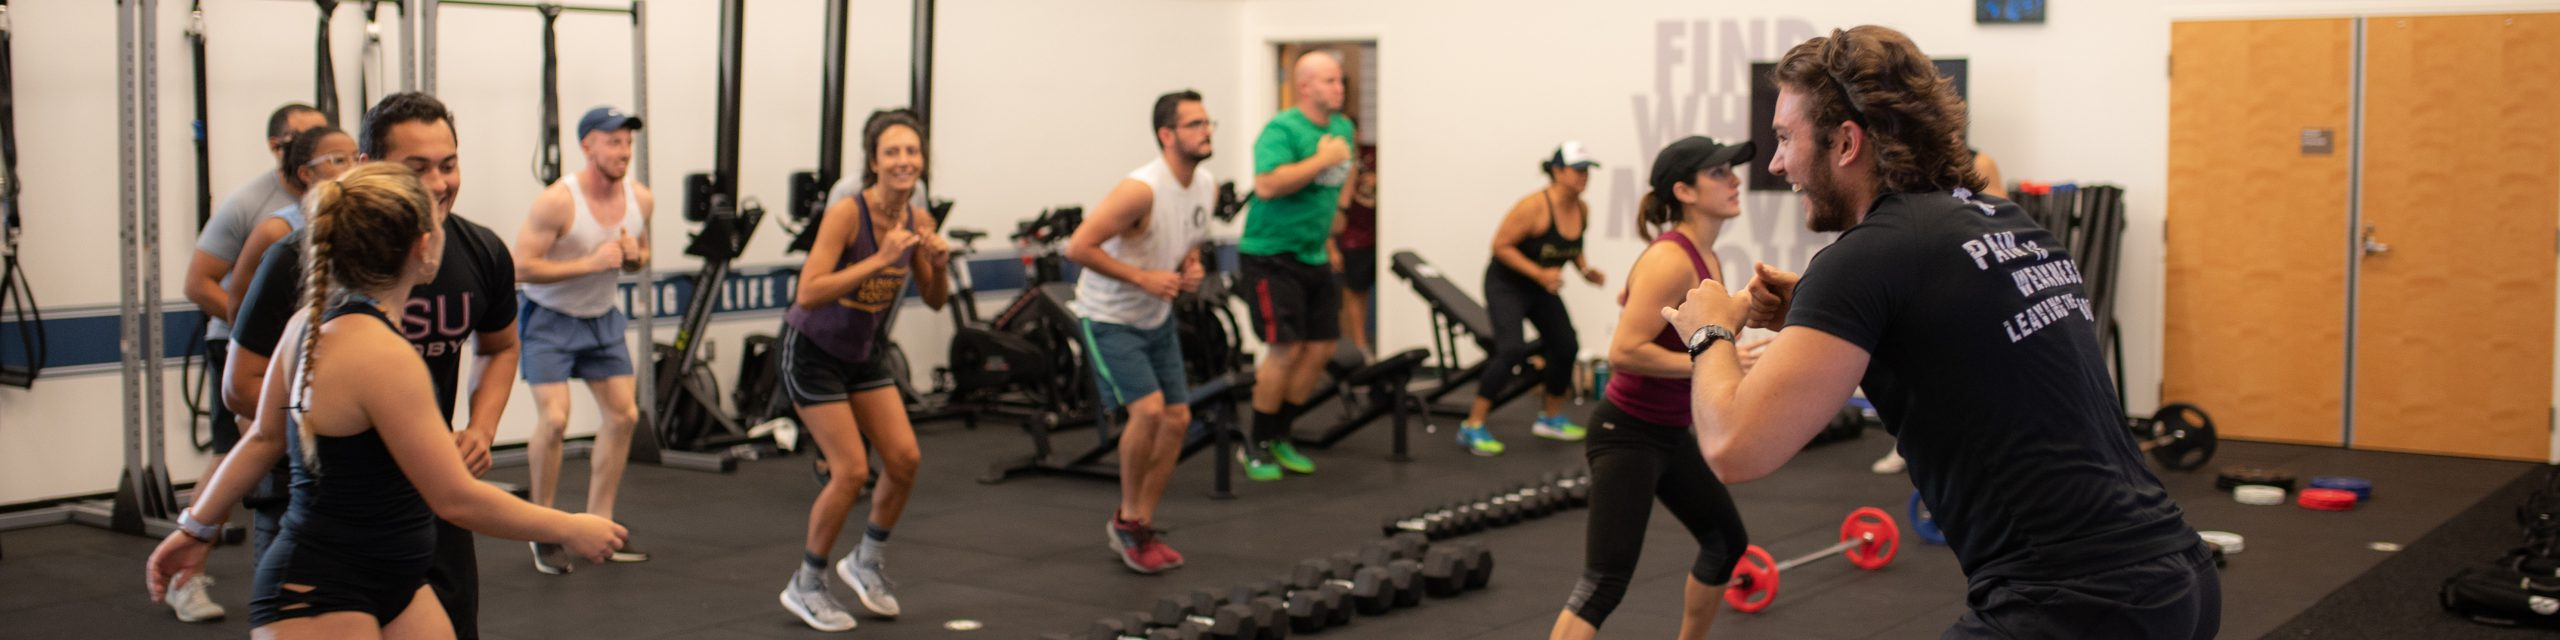 People participating in an F45 class